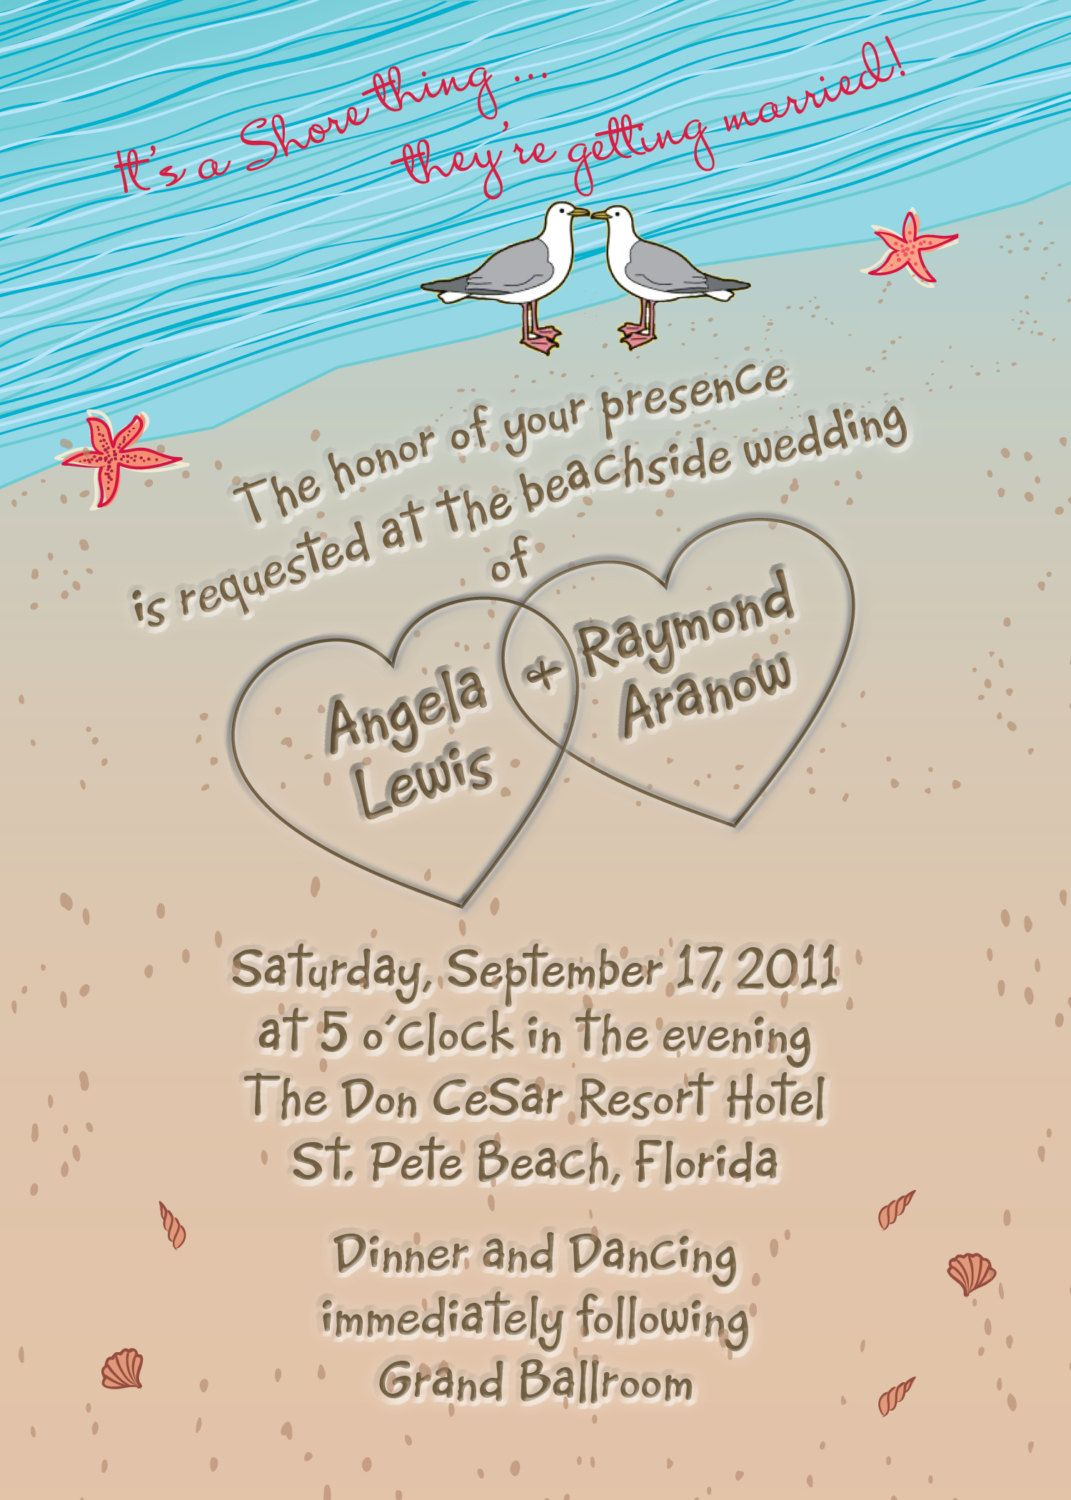 second wedding invitations wording%0A beach wedding invitation with hearts in sand seagulls and by itcoa beach wedding  invitation wording